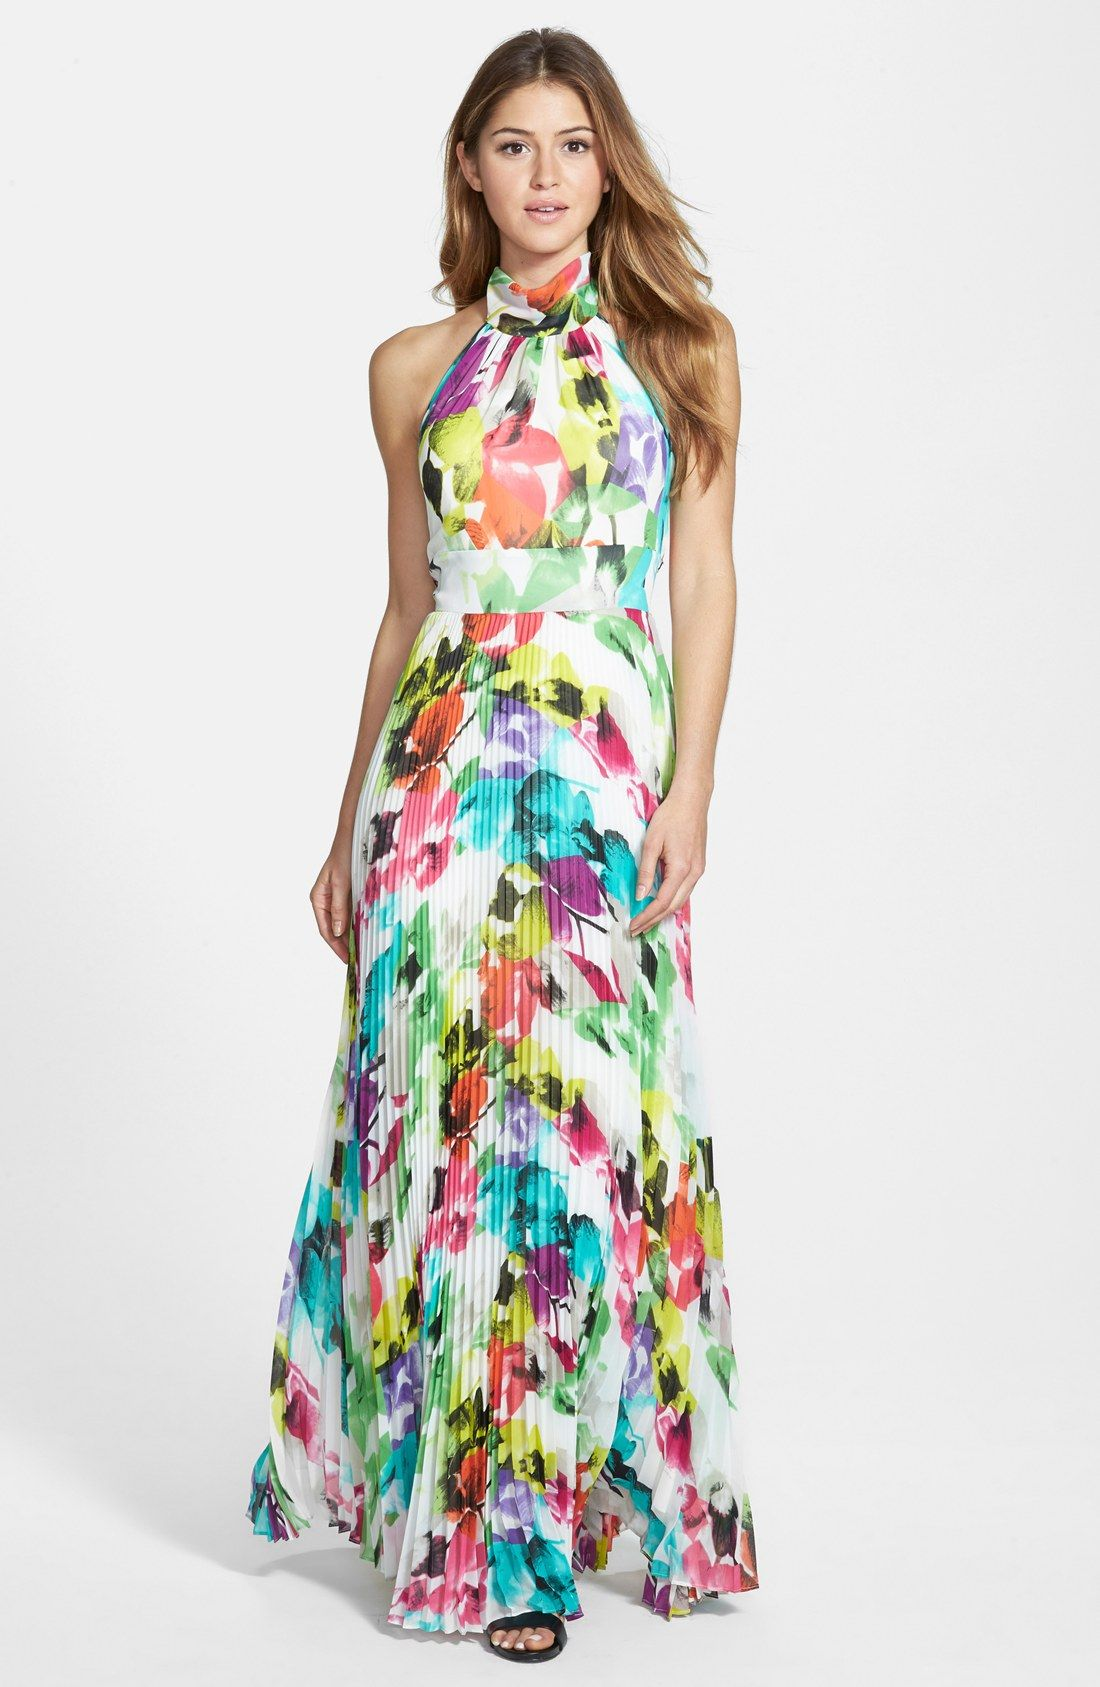 Floral dresses halter maxi dresses maxi dresses and for Halter dresses for wedding guests